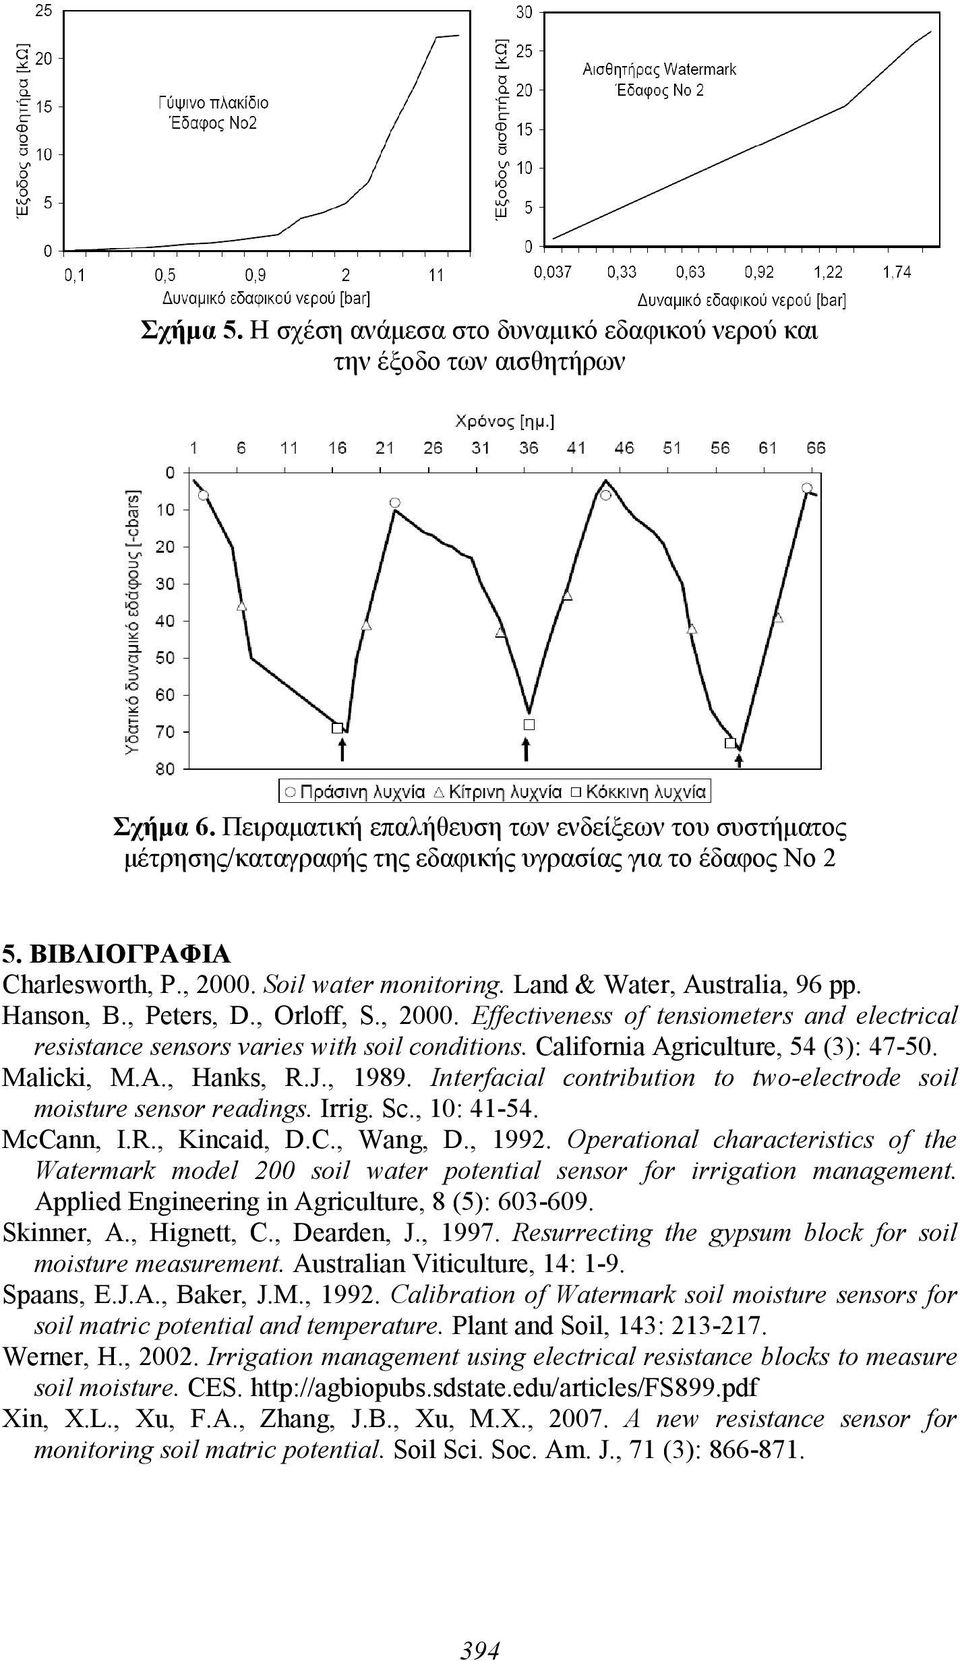 Land & Water, Australia, 96 pp. Hanson, B., Peters, D., Orloff, S., 2000. Effectiveness of tensiometers and electrical resistance sensors varies with soil conditions.